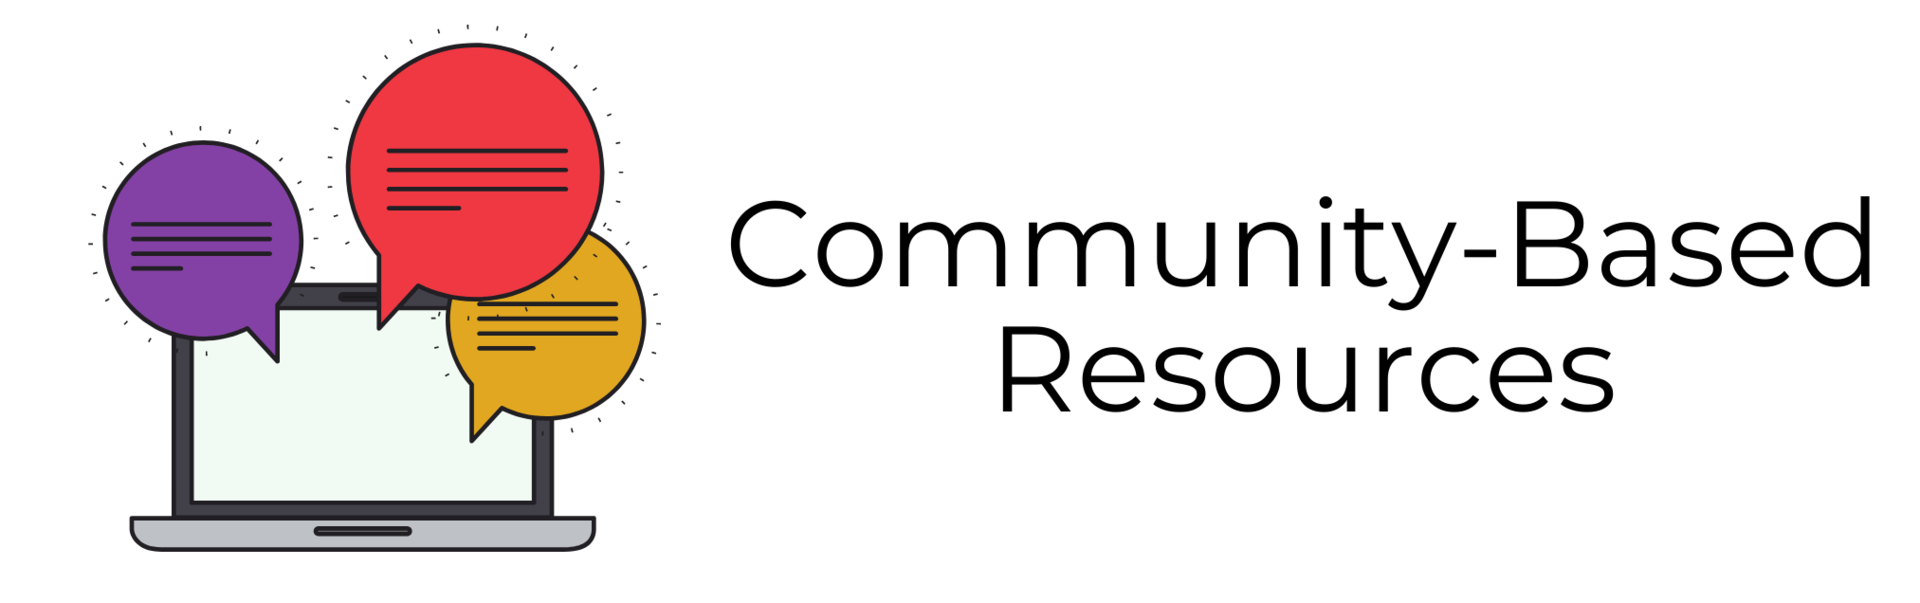 Community-Based Resources